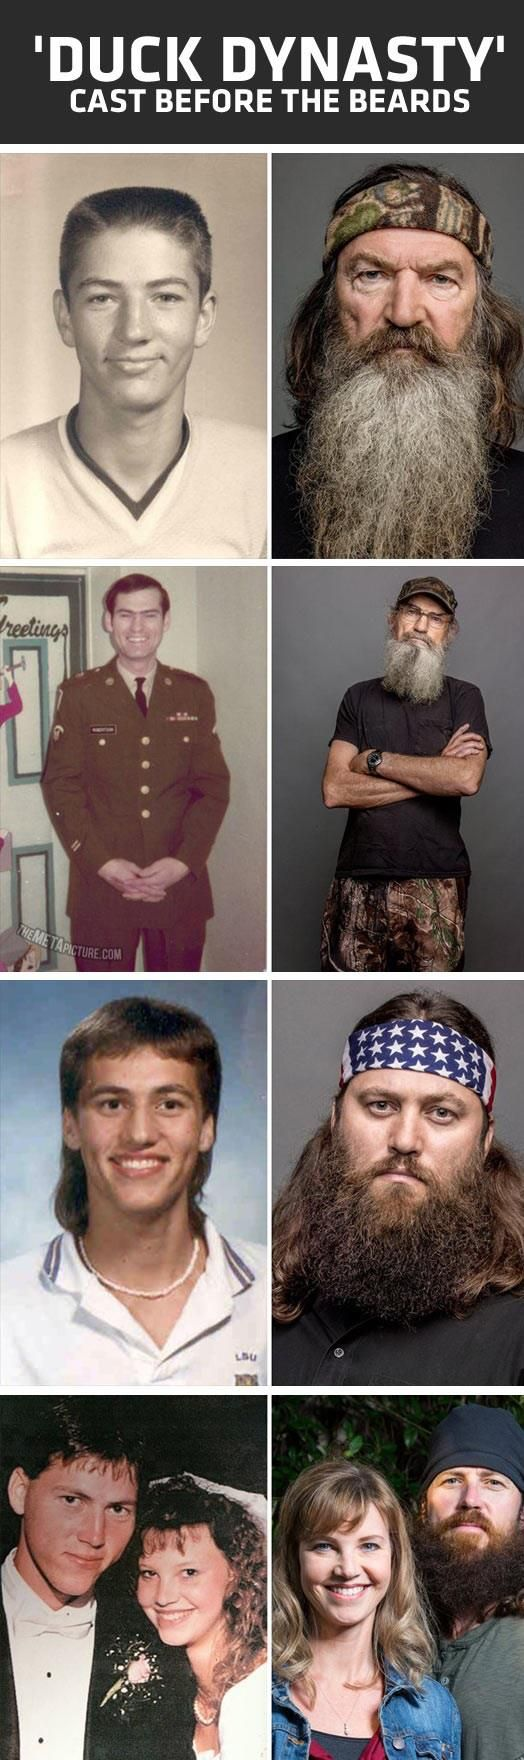 Then and Now duck dynasty